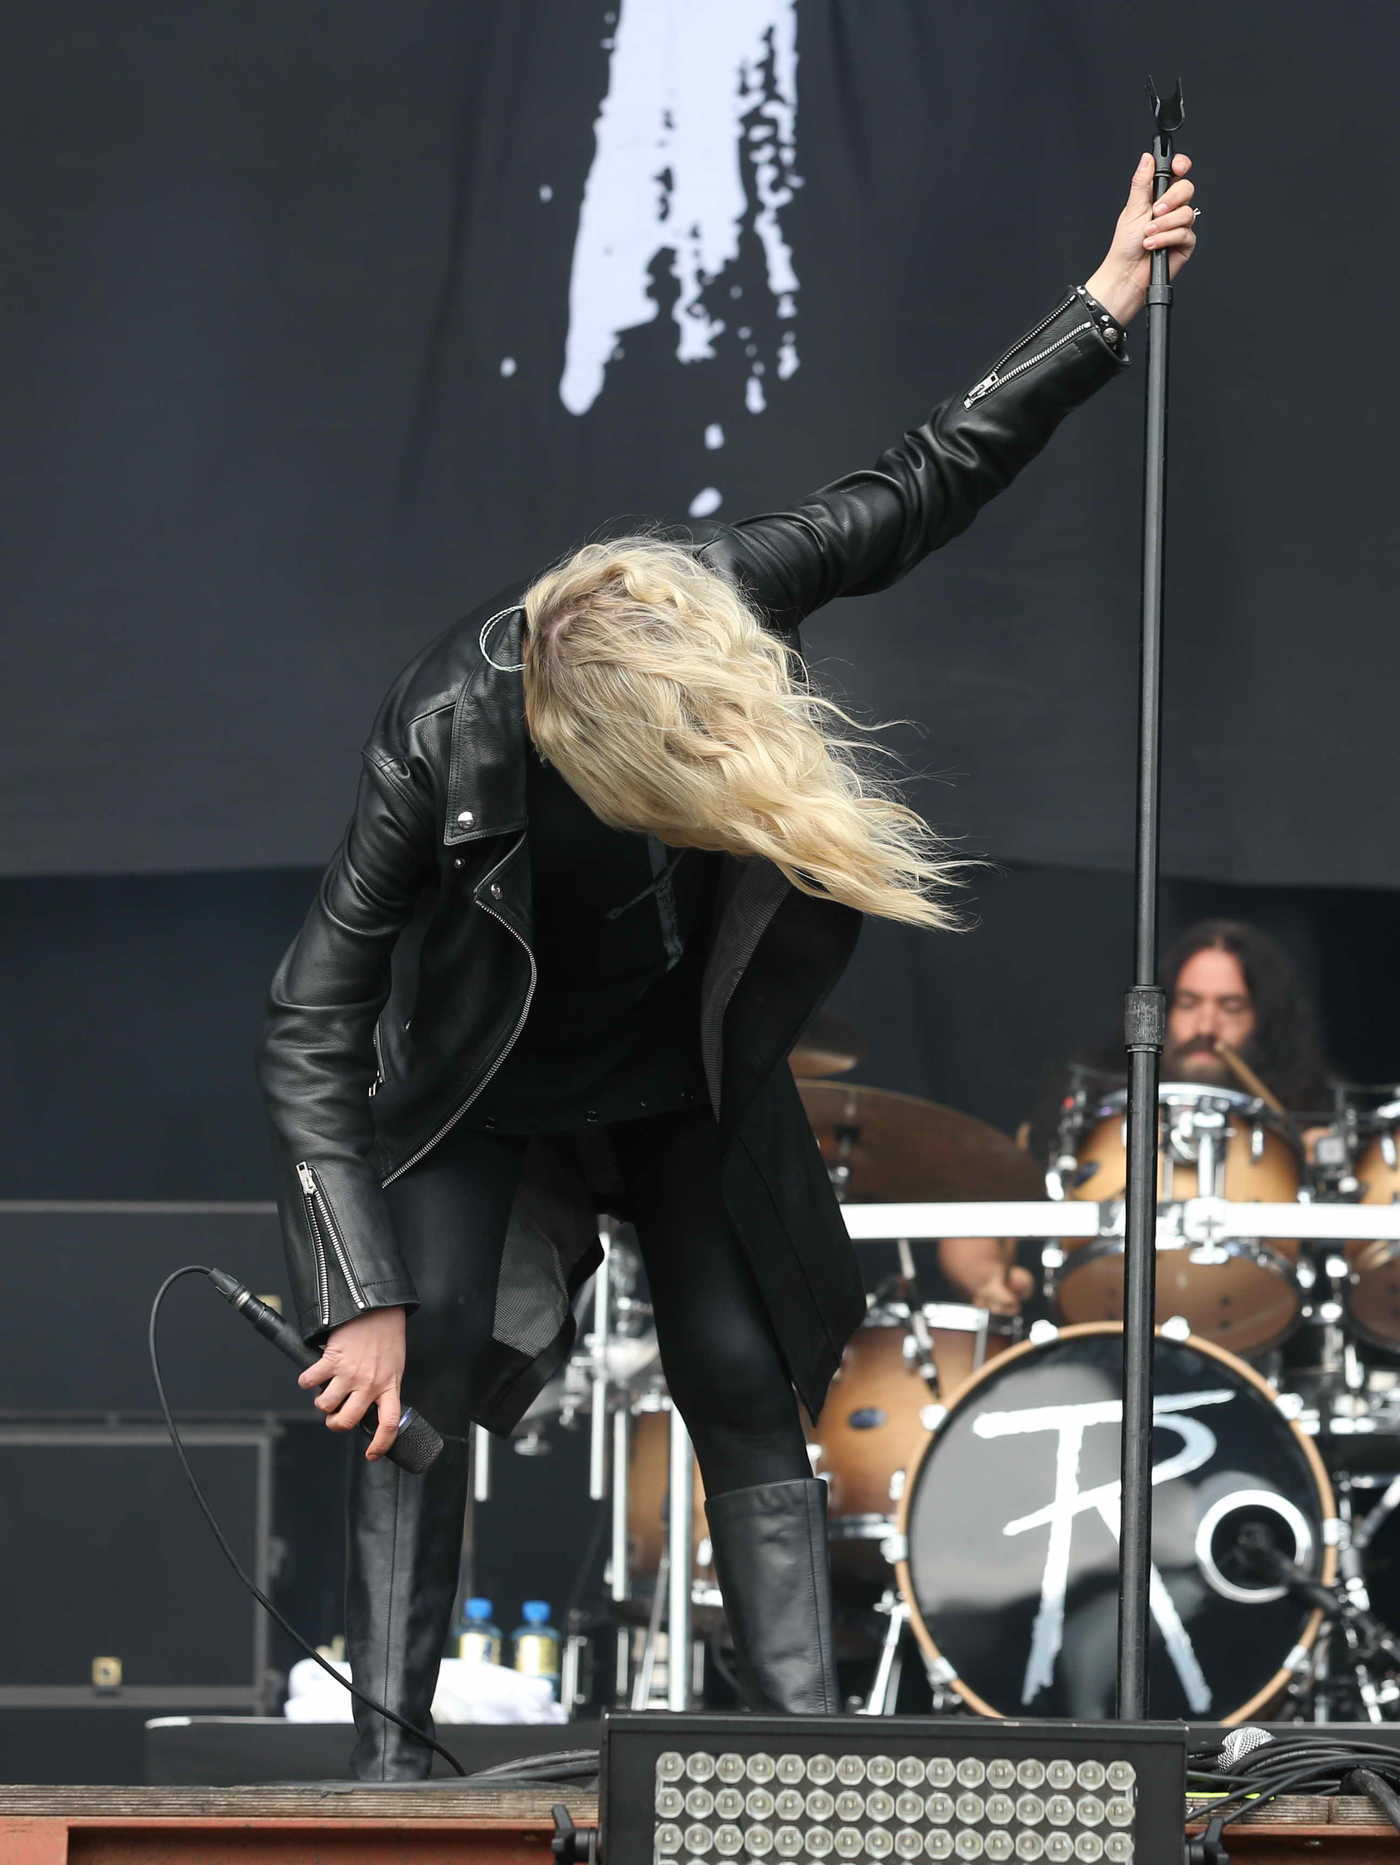 Taylor Momsen Performs at Bramham Park in Leeds 08/27/2017